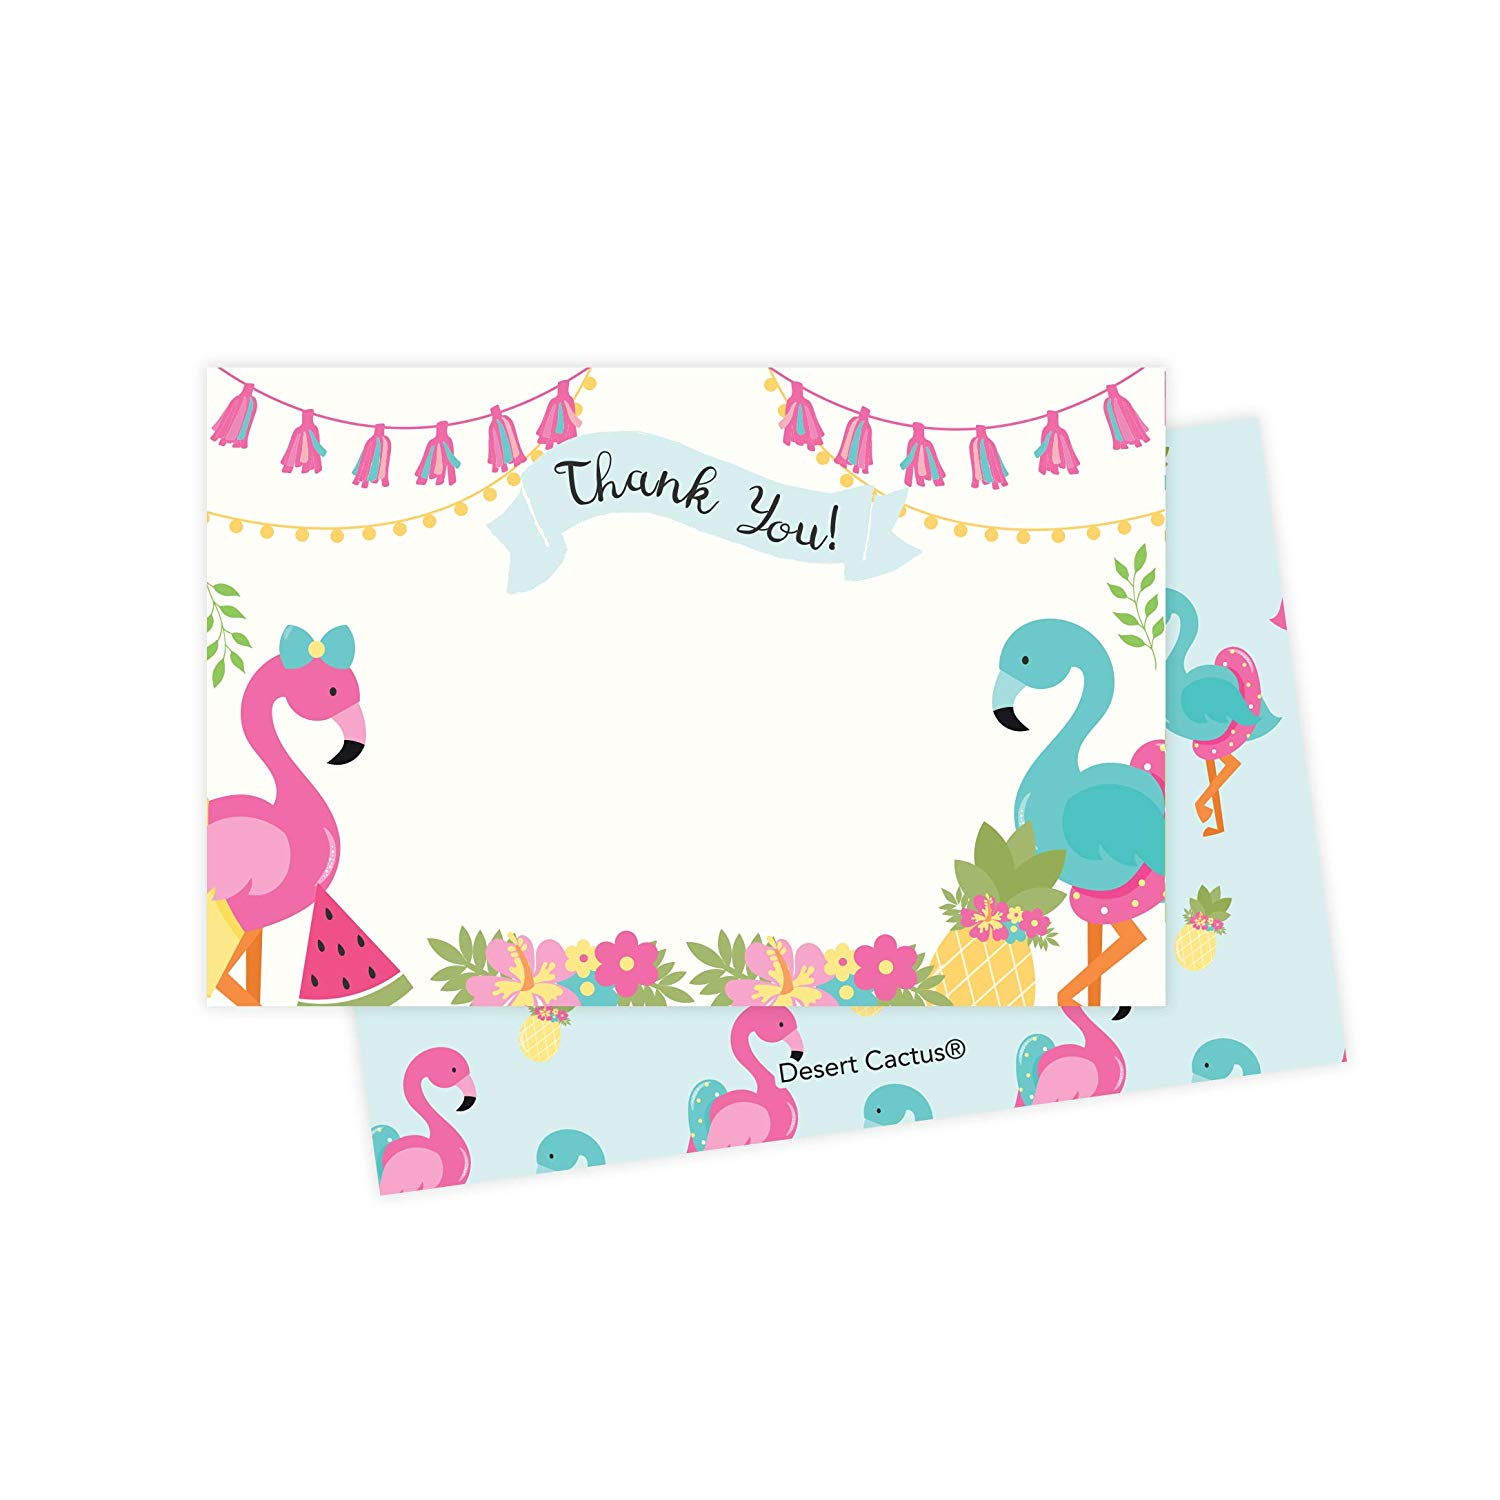 Construction Thank You Cards 25ct With Envelopes /& Seal Stickers Bulk Birthday Party Bridal Blank Graduation Kids Children Boy Girl Baby Shower 25 Count